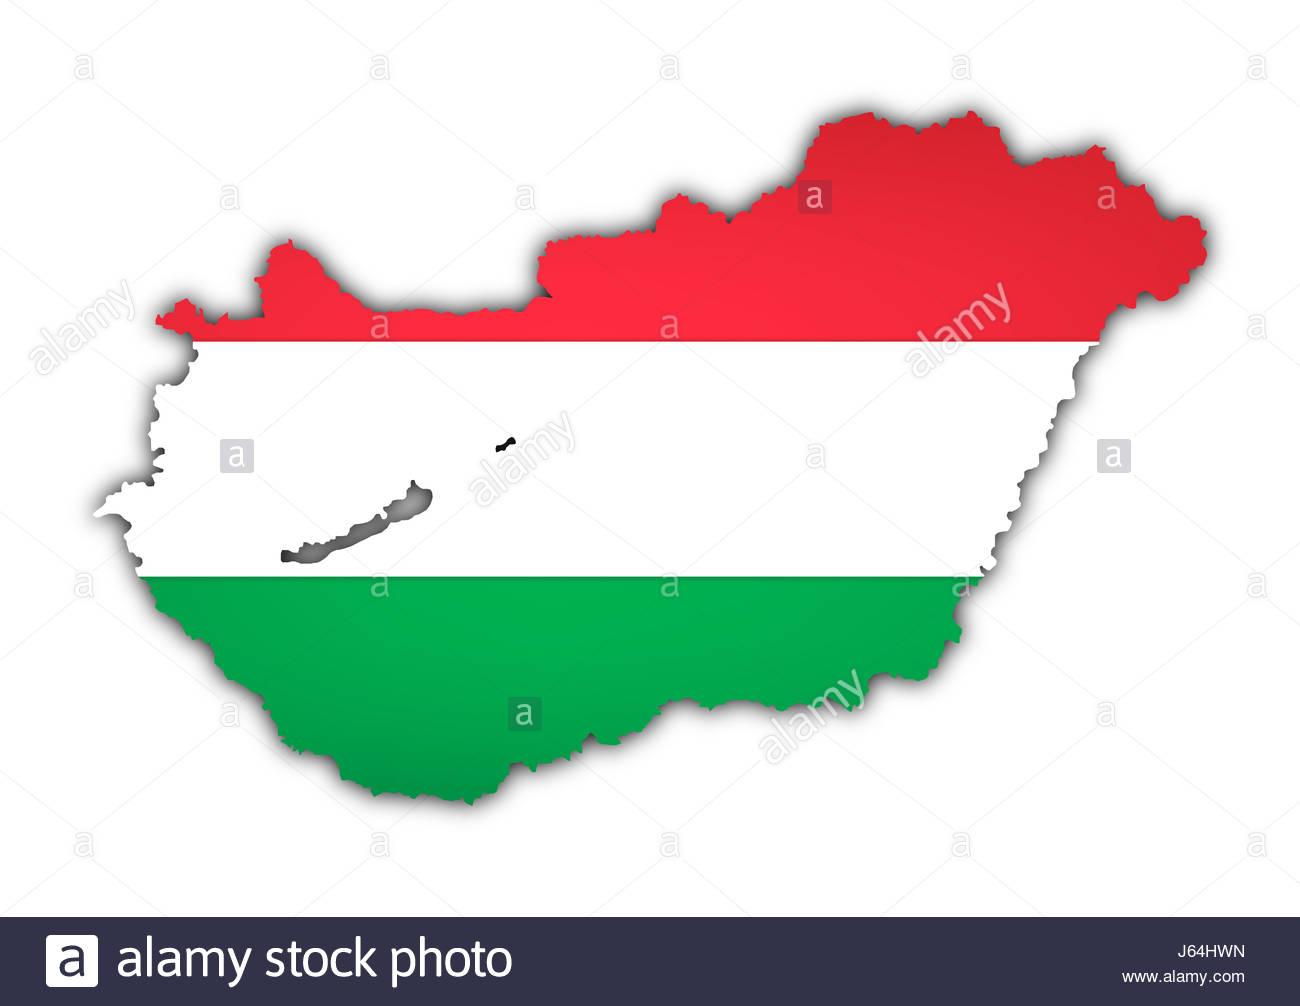 Budapest Map Hungary Stock Photos Budapest Map Hungary Stock - Hungary blank map